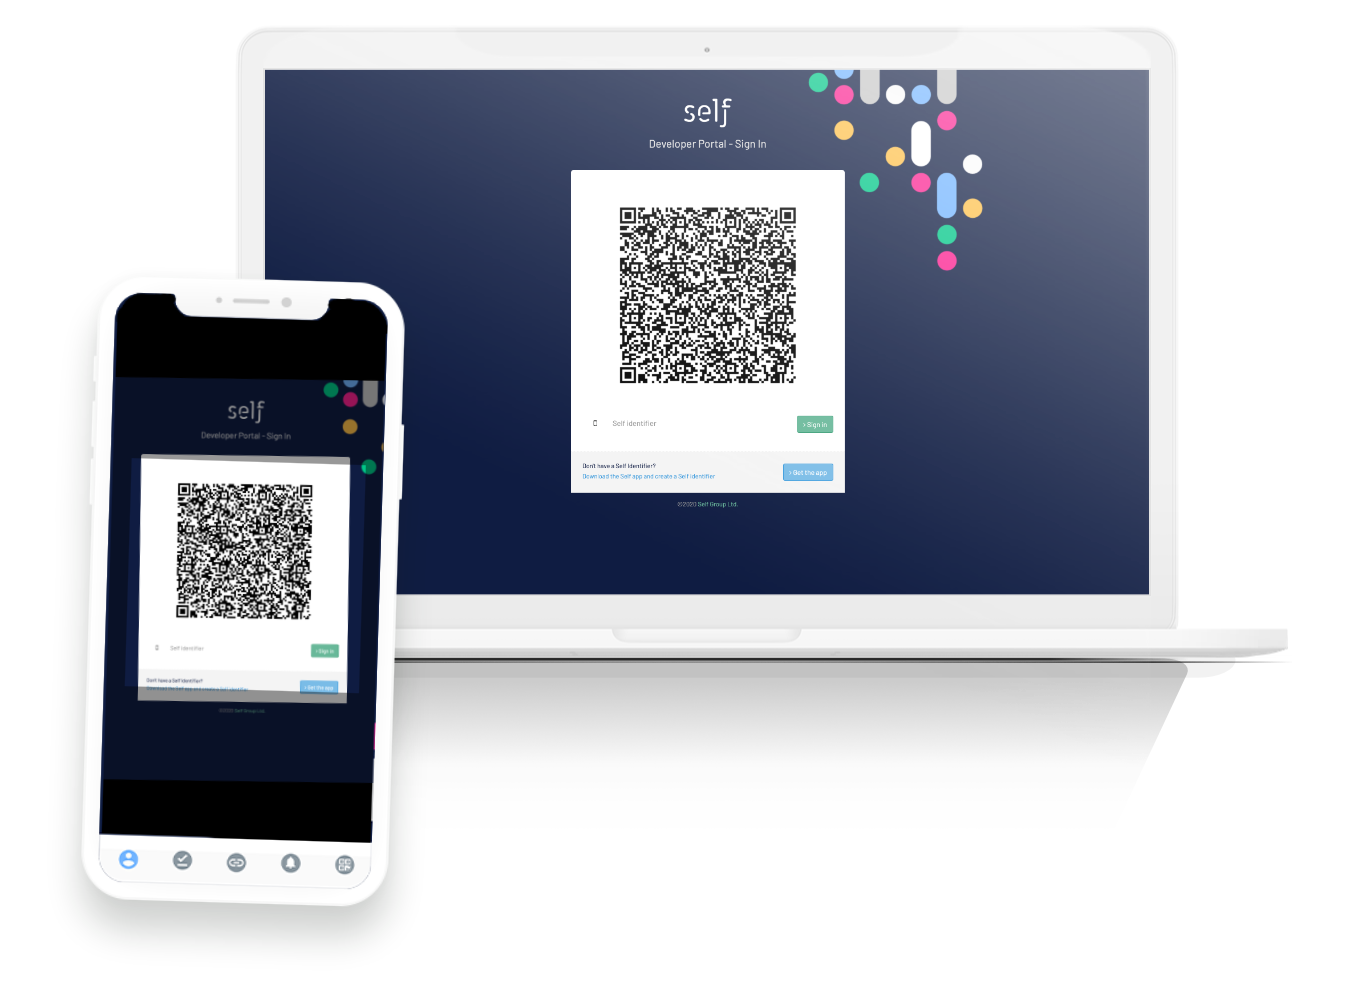 Self scanning a QR code to create a connection